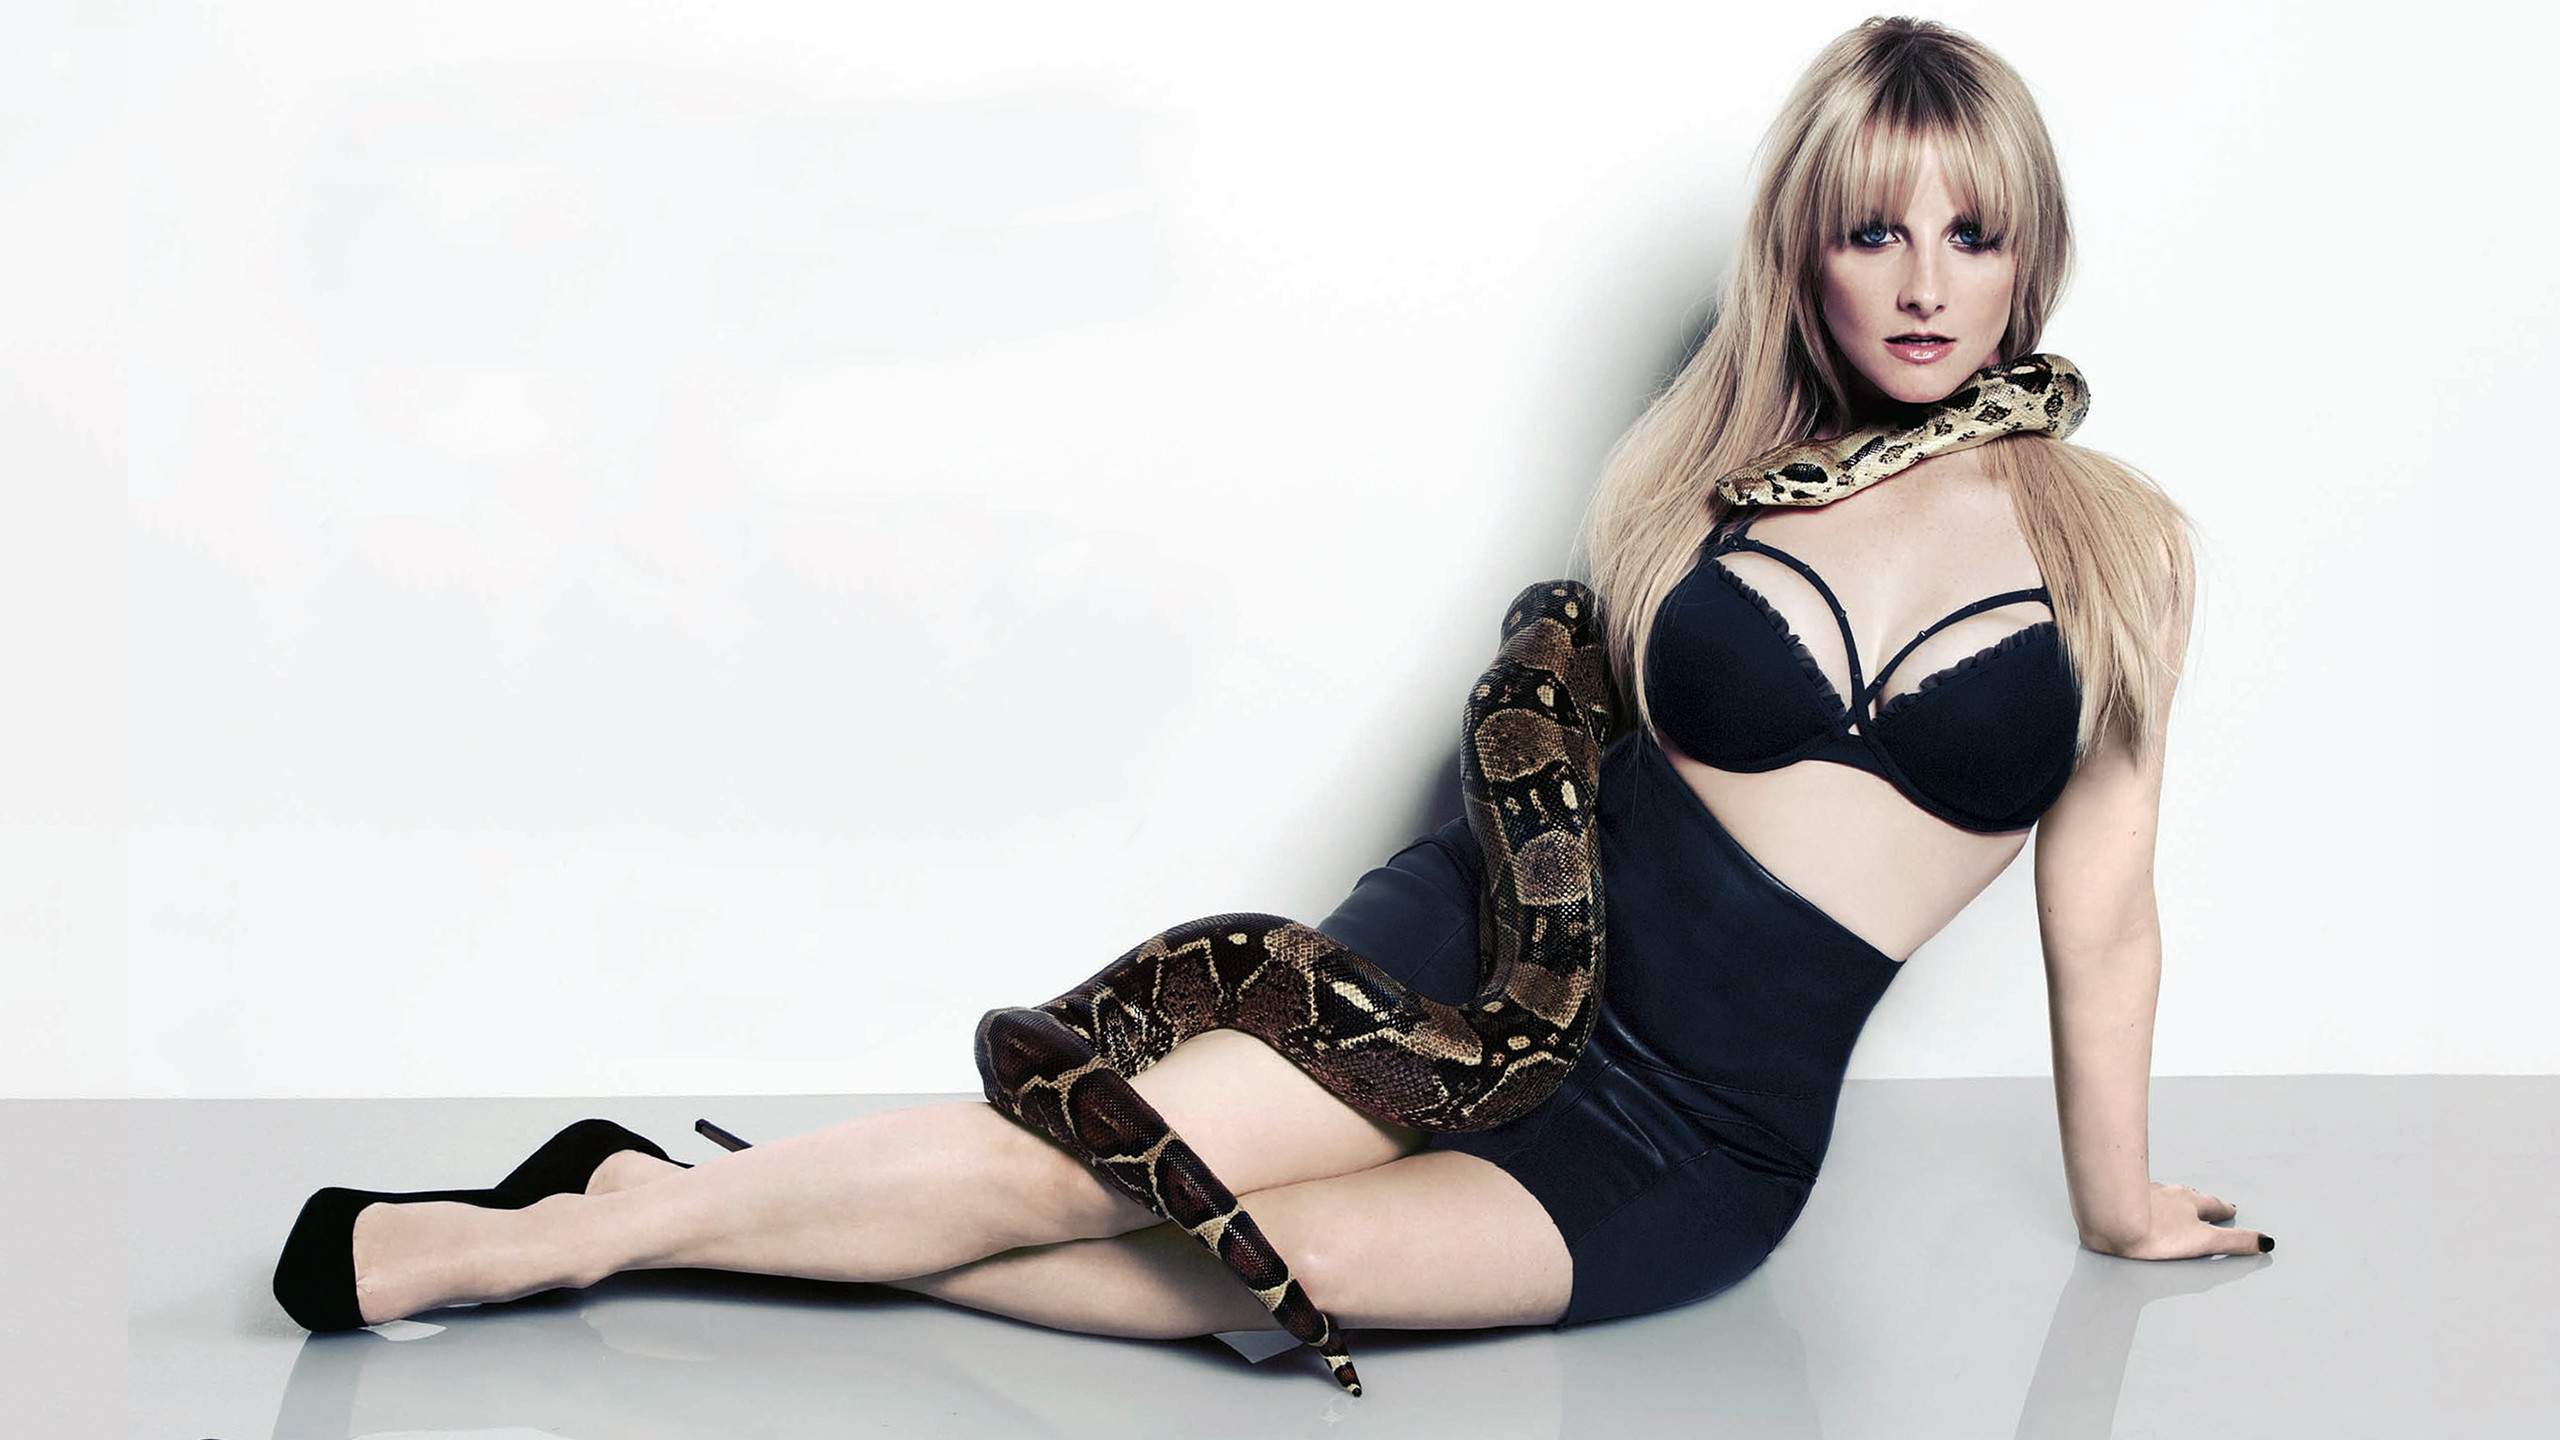 melissa rauch wallpaper full hd pictures